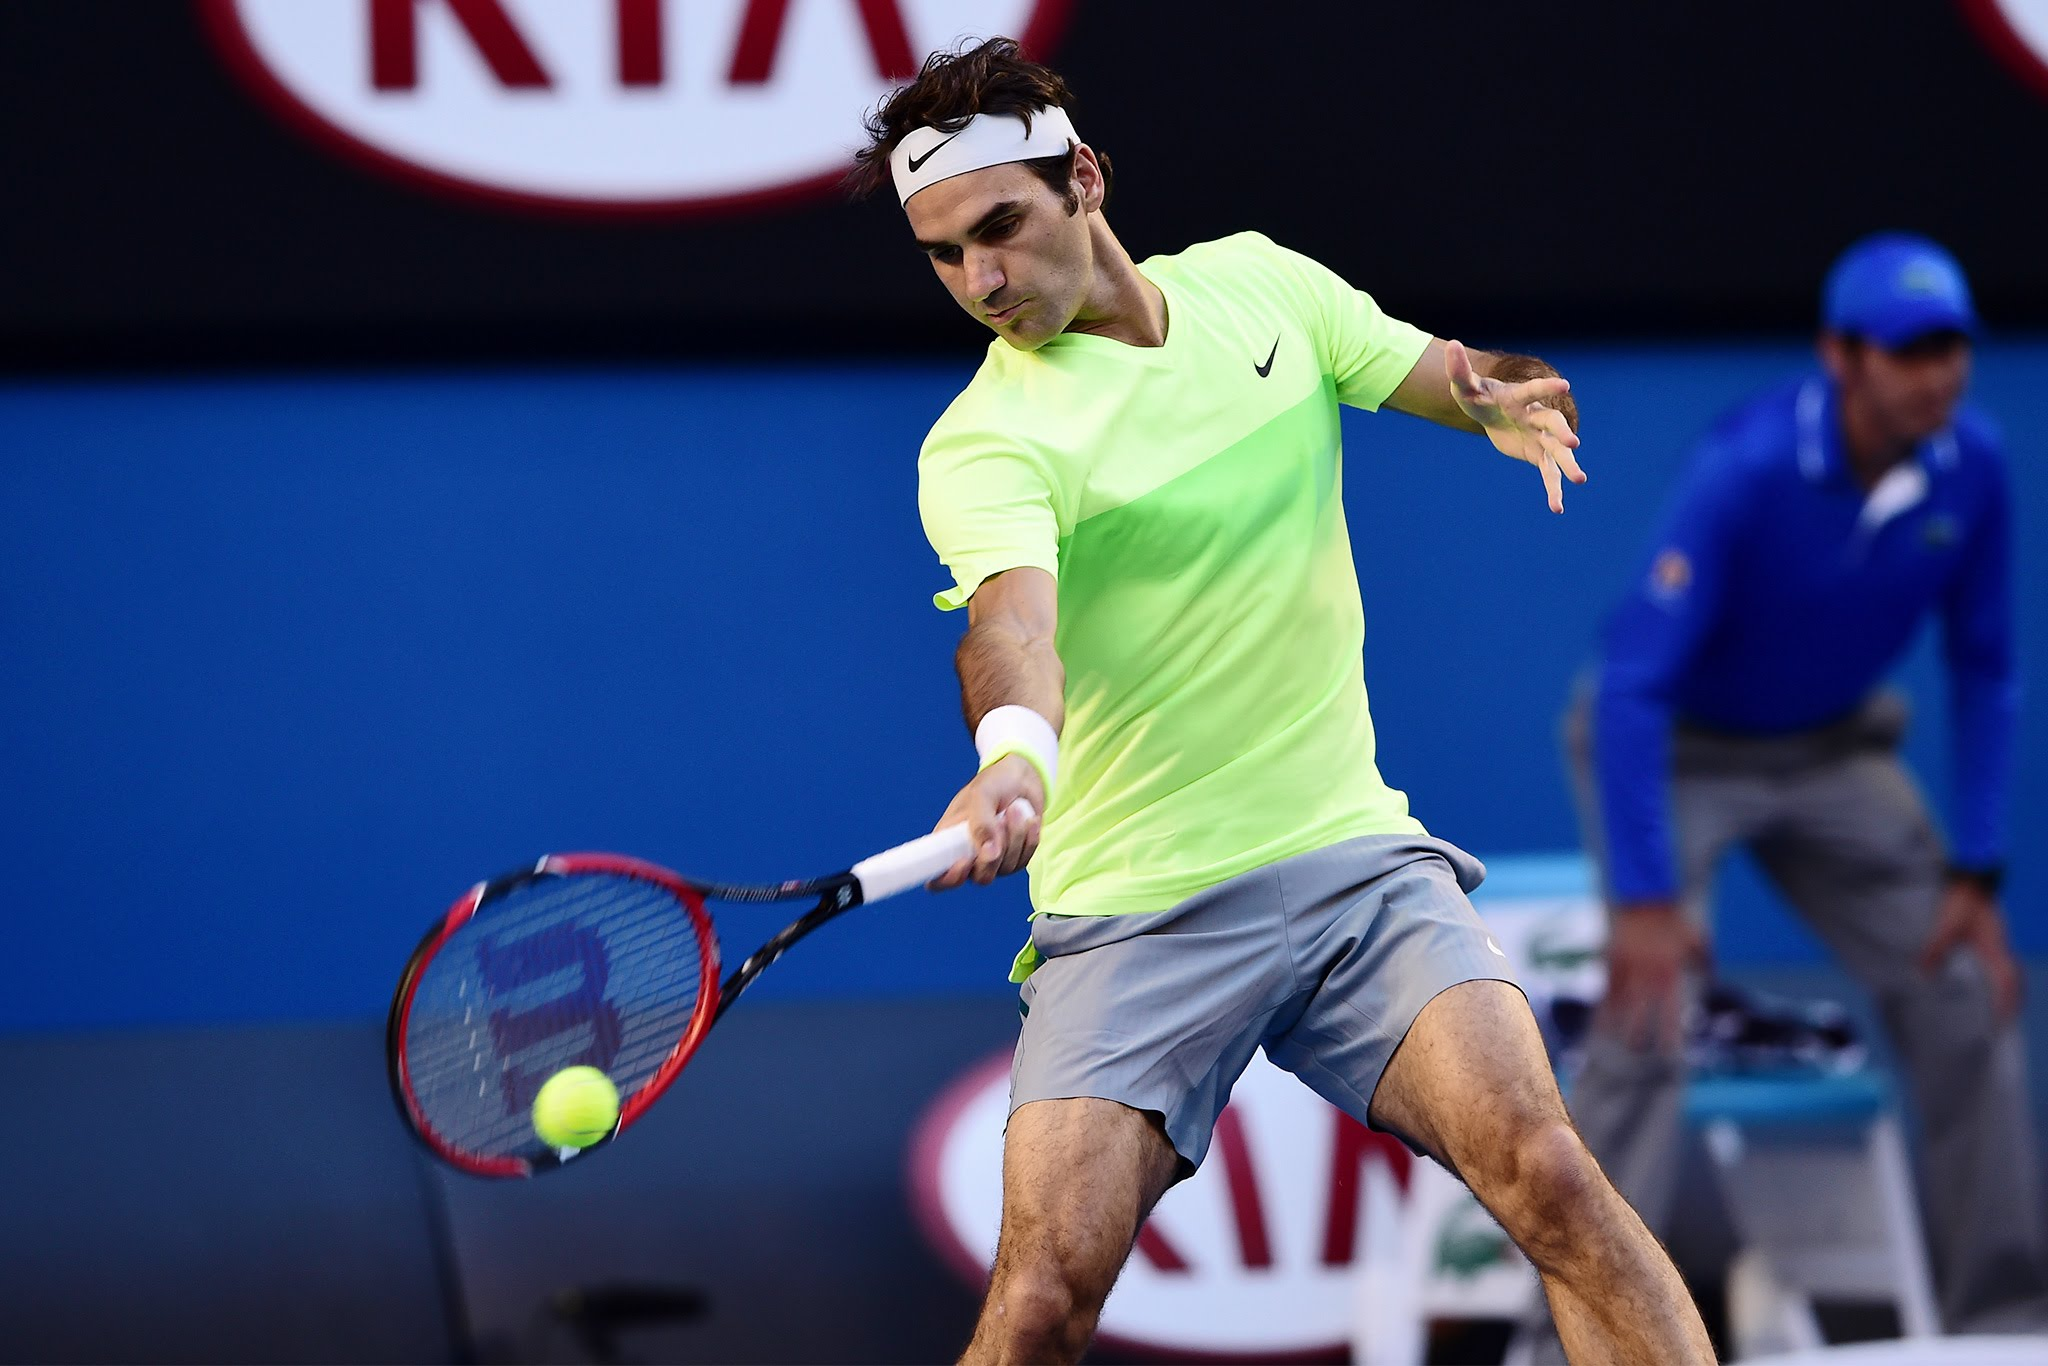 Top 10 Players To Look Out For At The 2015 US Open